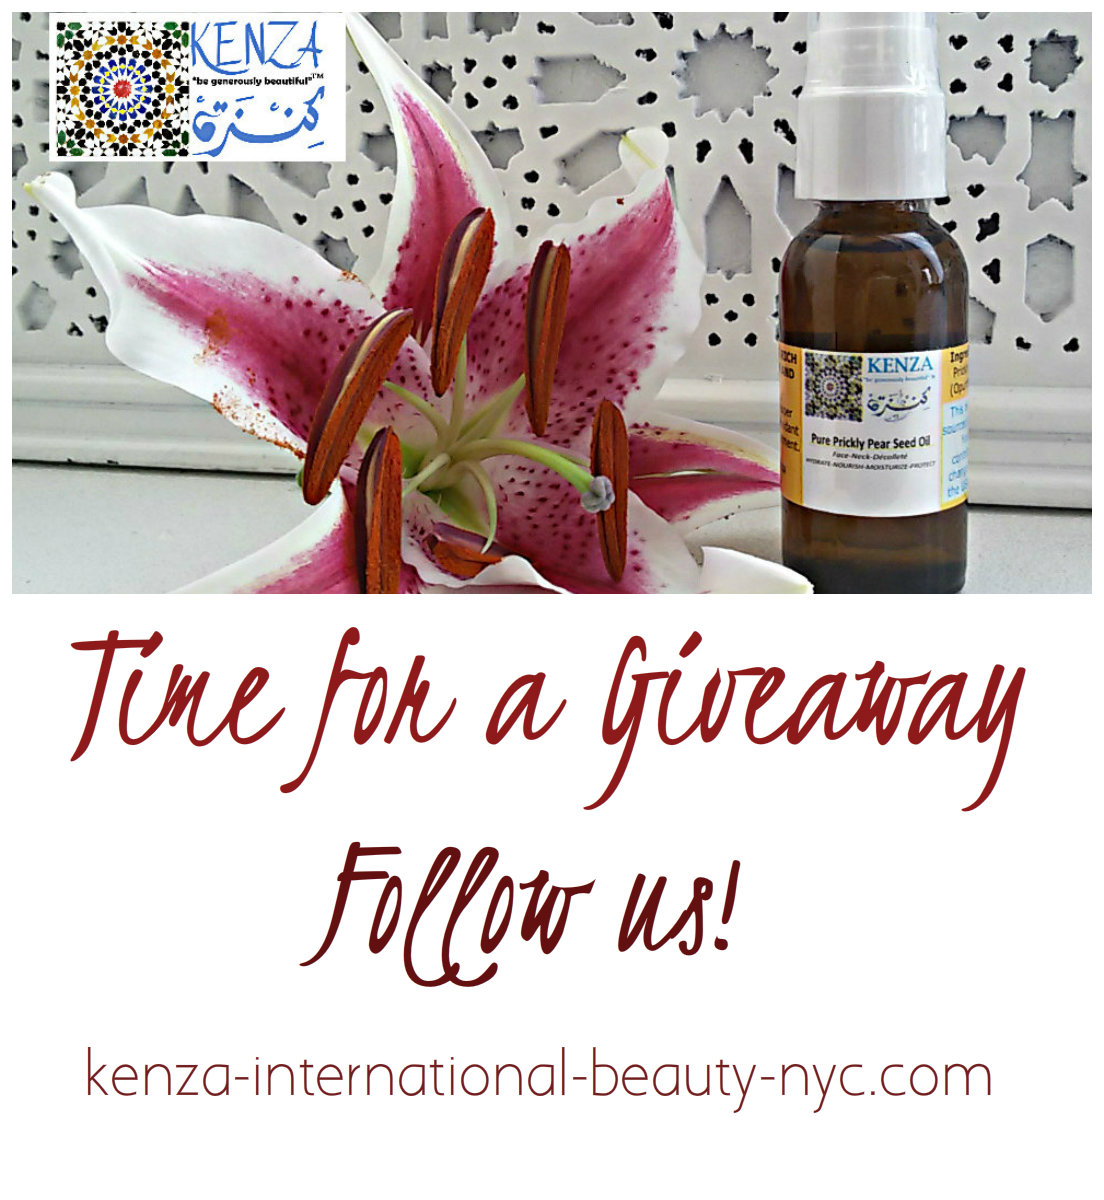 Two KENZA Pure Prickly Pear Seed Oil 1oz Giveaway